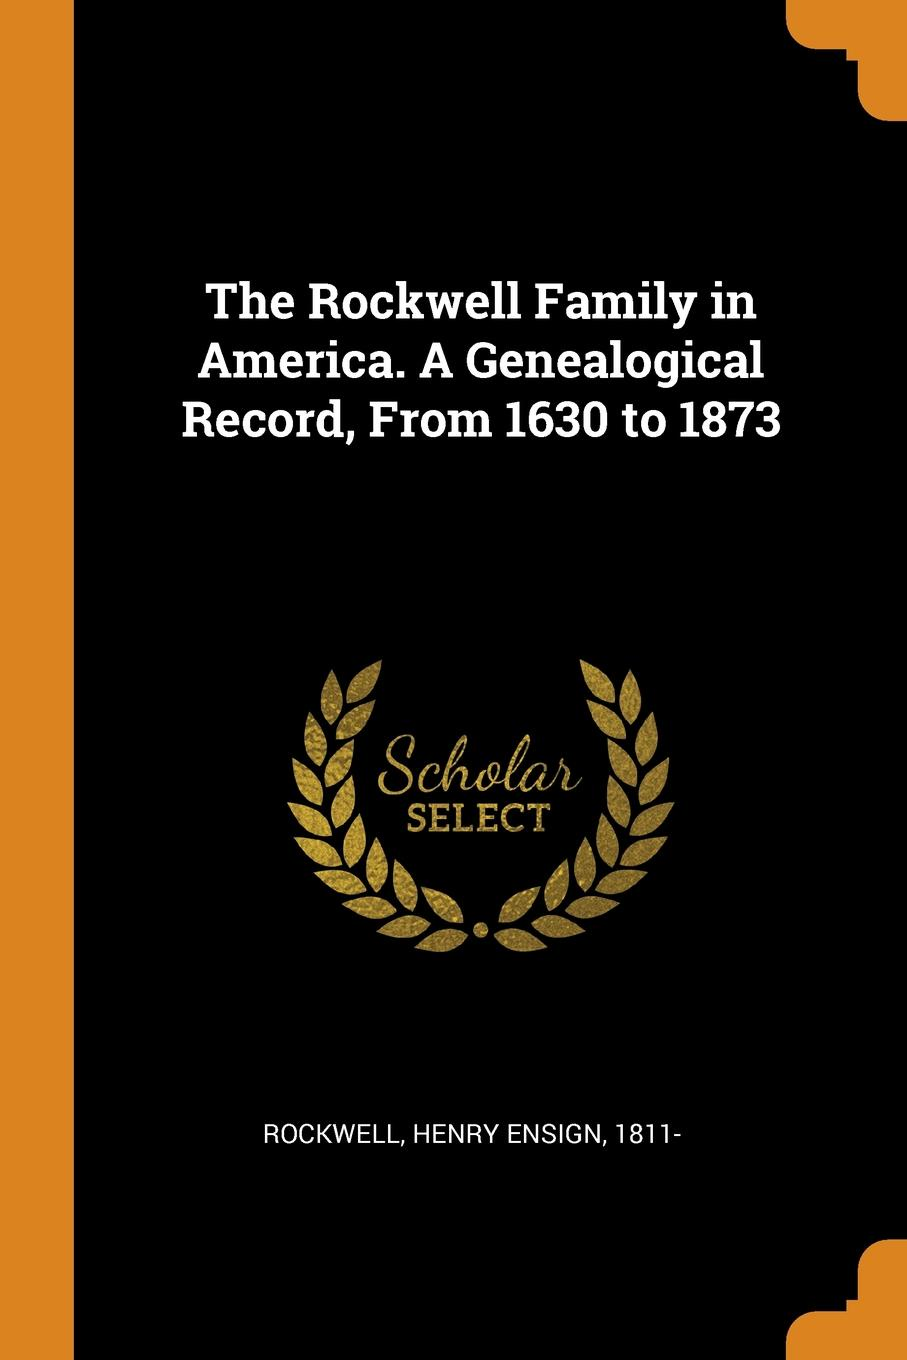 The Rockwell Family in America. A Genealogical Record, From 1630 to 1873